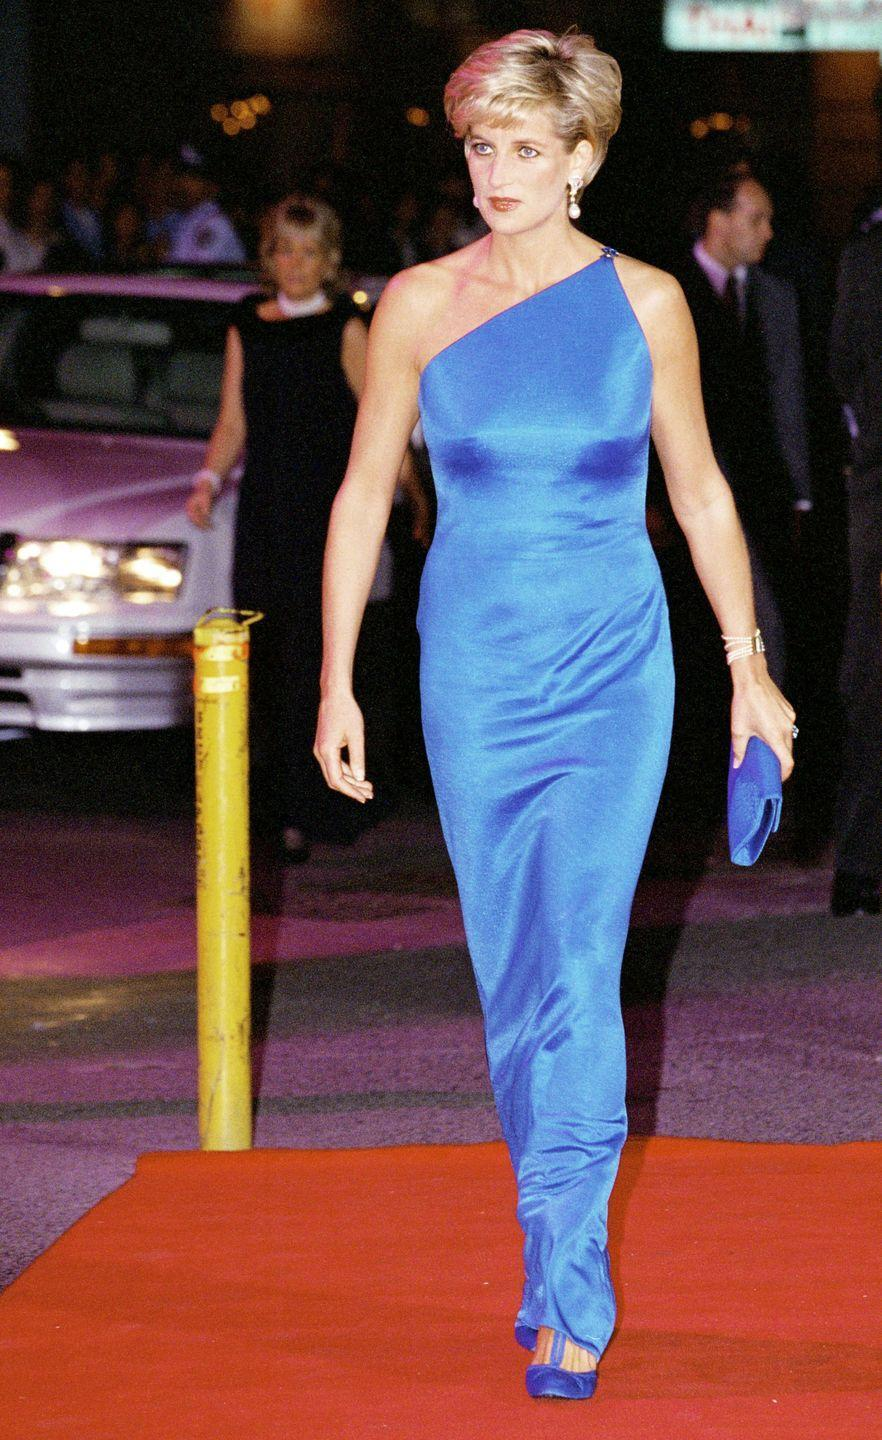 <p>In a blue gown and shoes and holding a matching clutch at an event in New Orleans, Louisiana. </p>